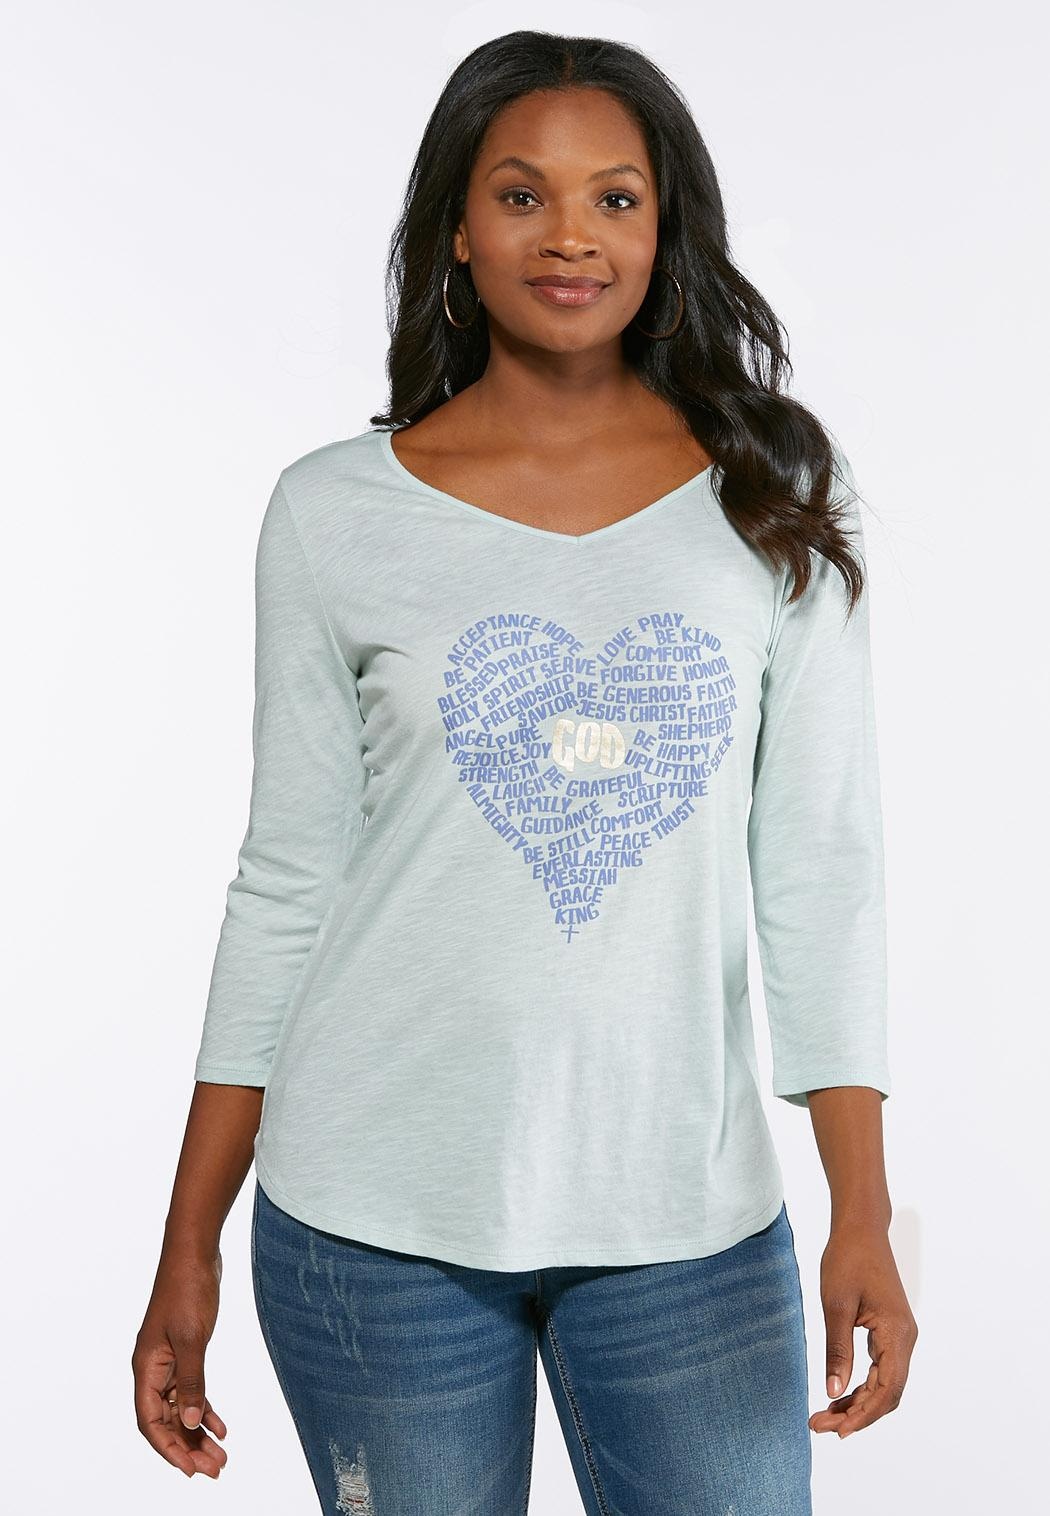 46e57eee500d6 Plus Size Inspirational Heart Top alternate view · Plus Size Inspirational  Heart Top